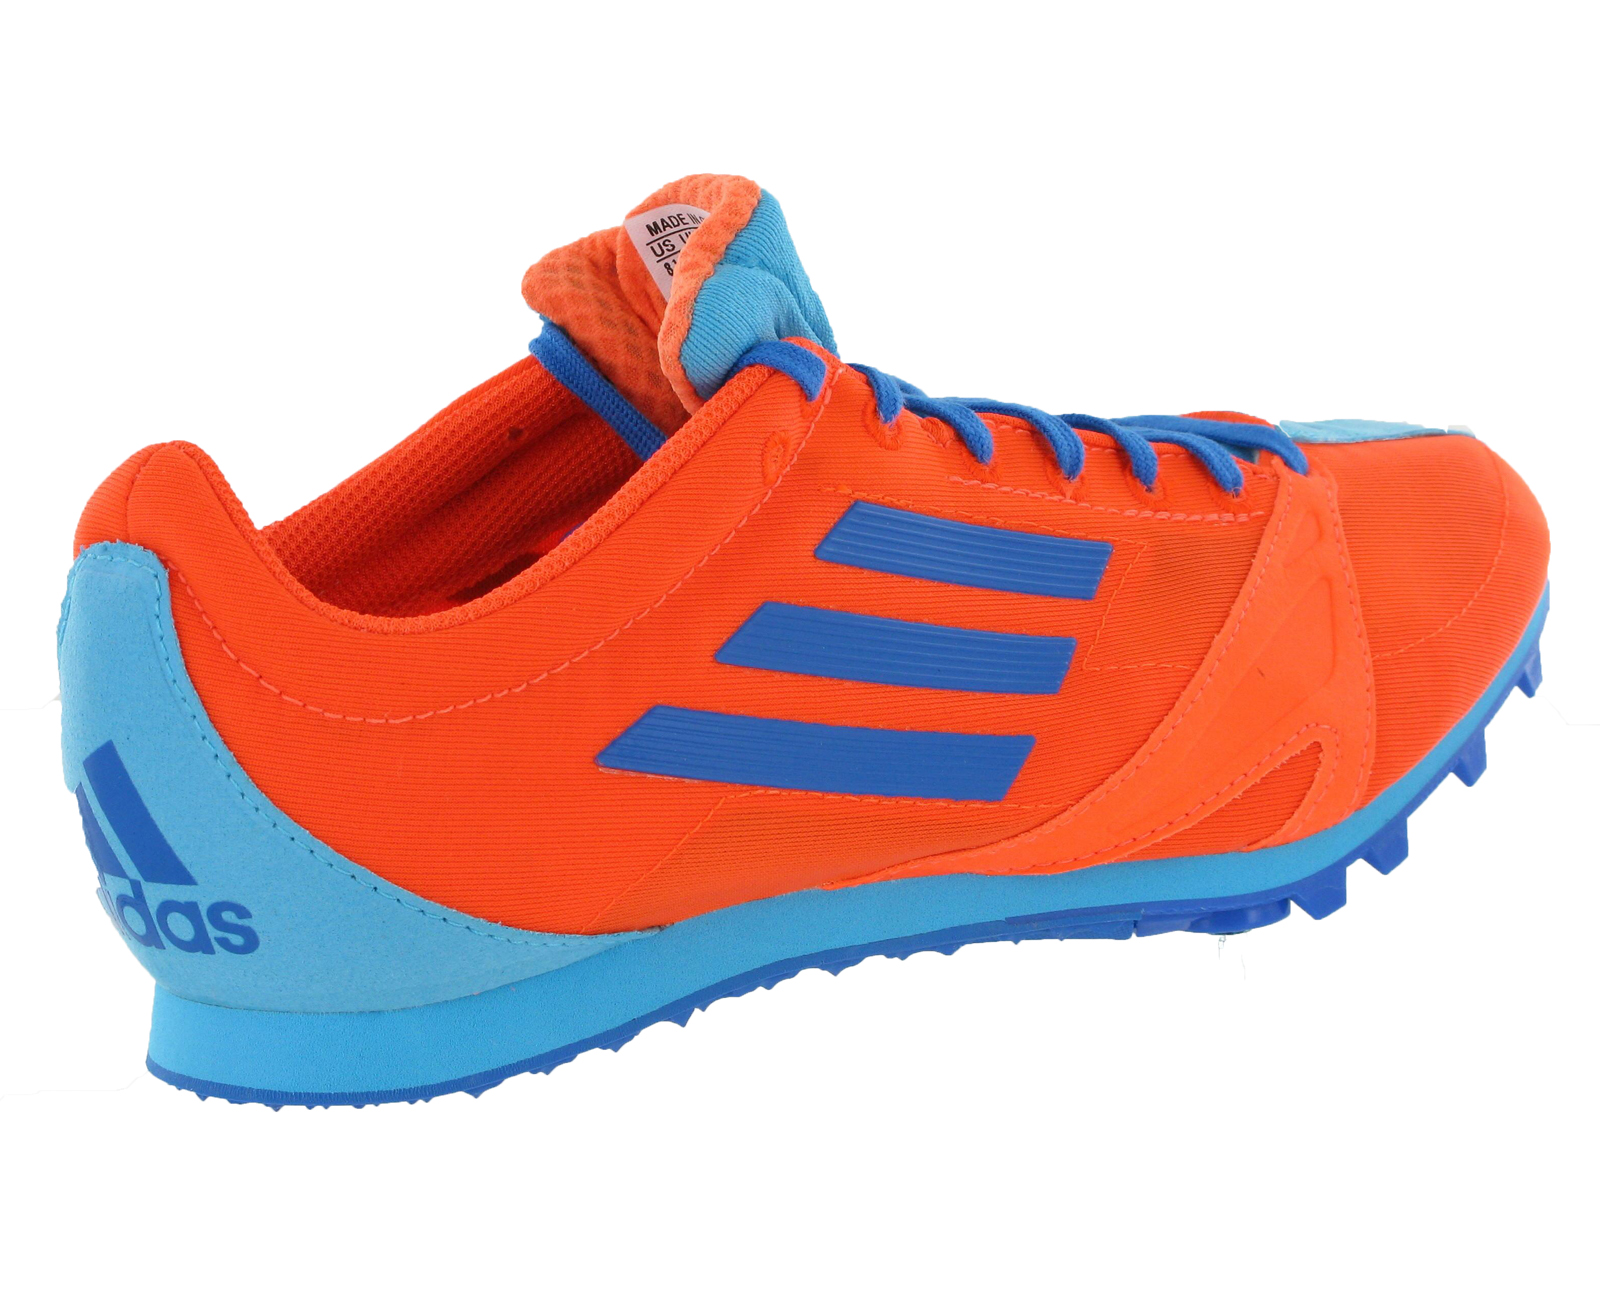 adidas trainers for boys size 5